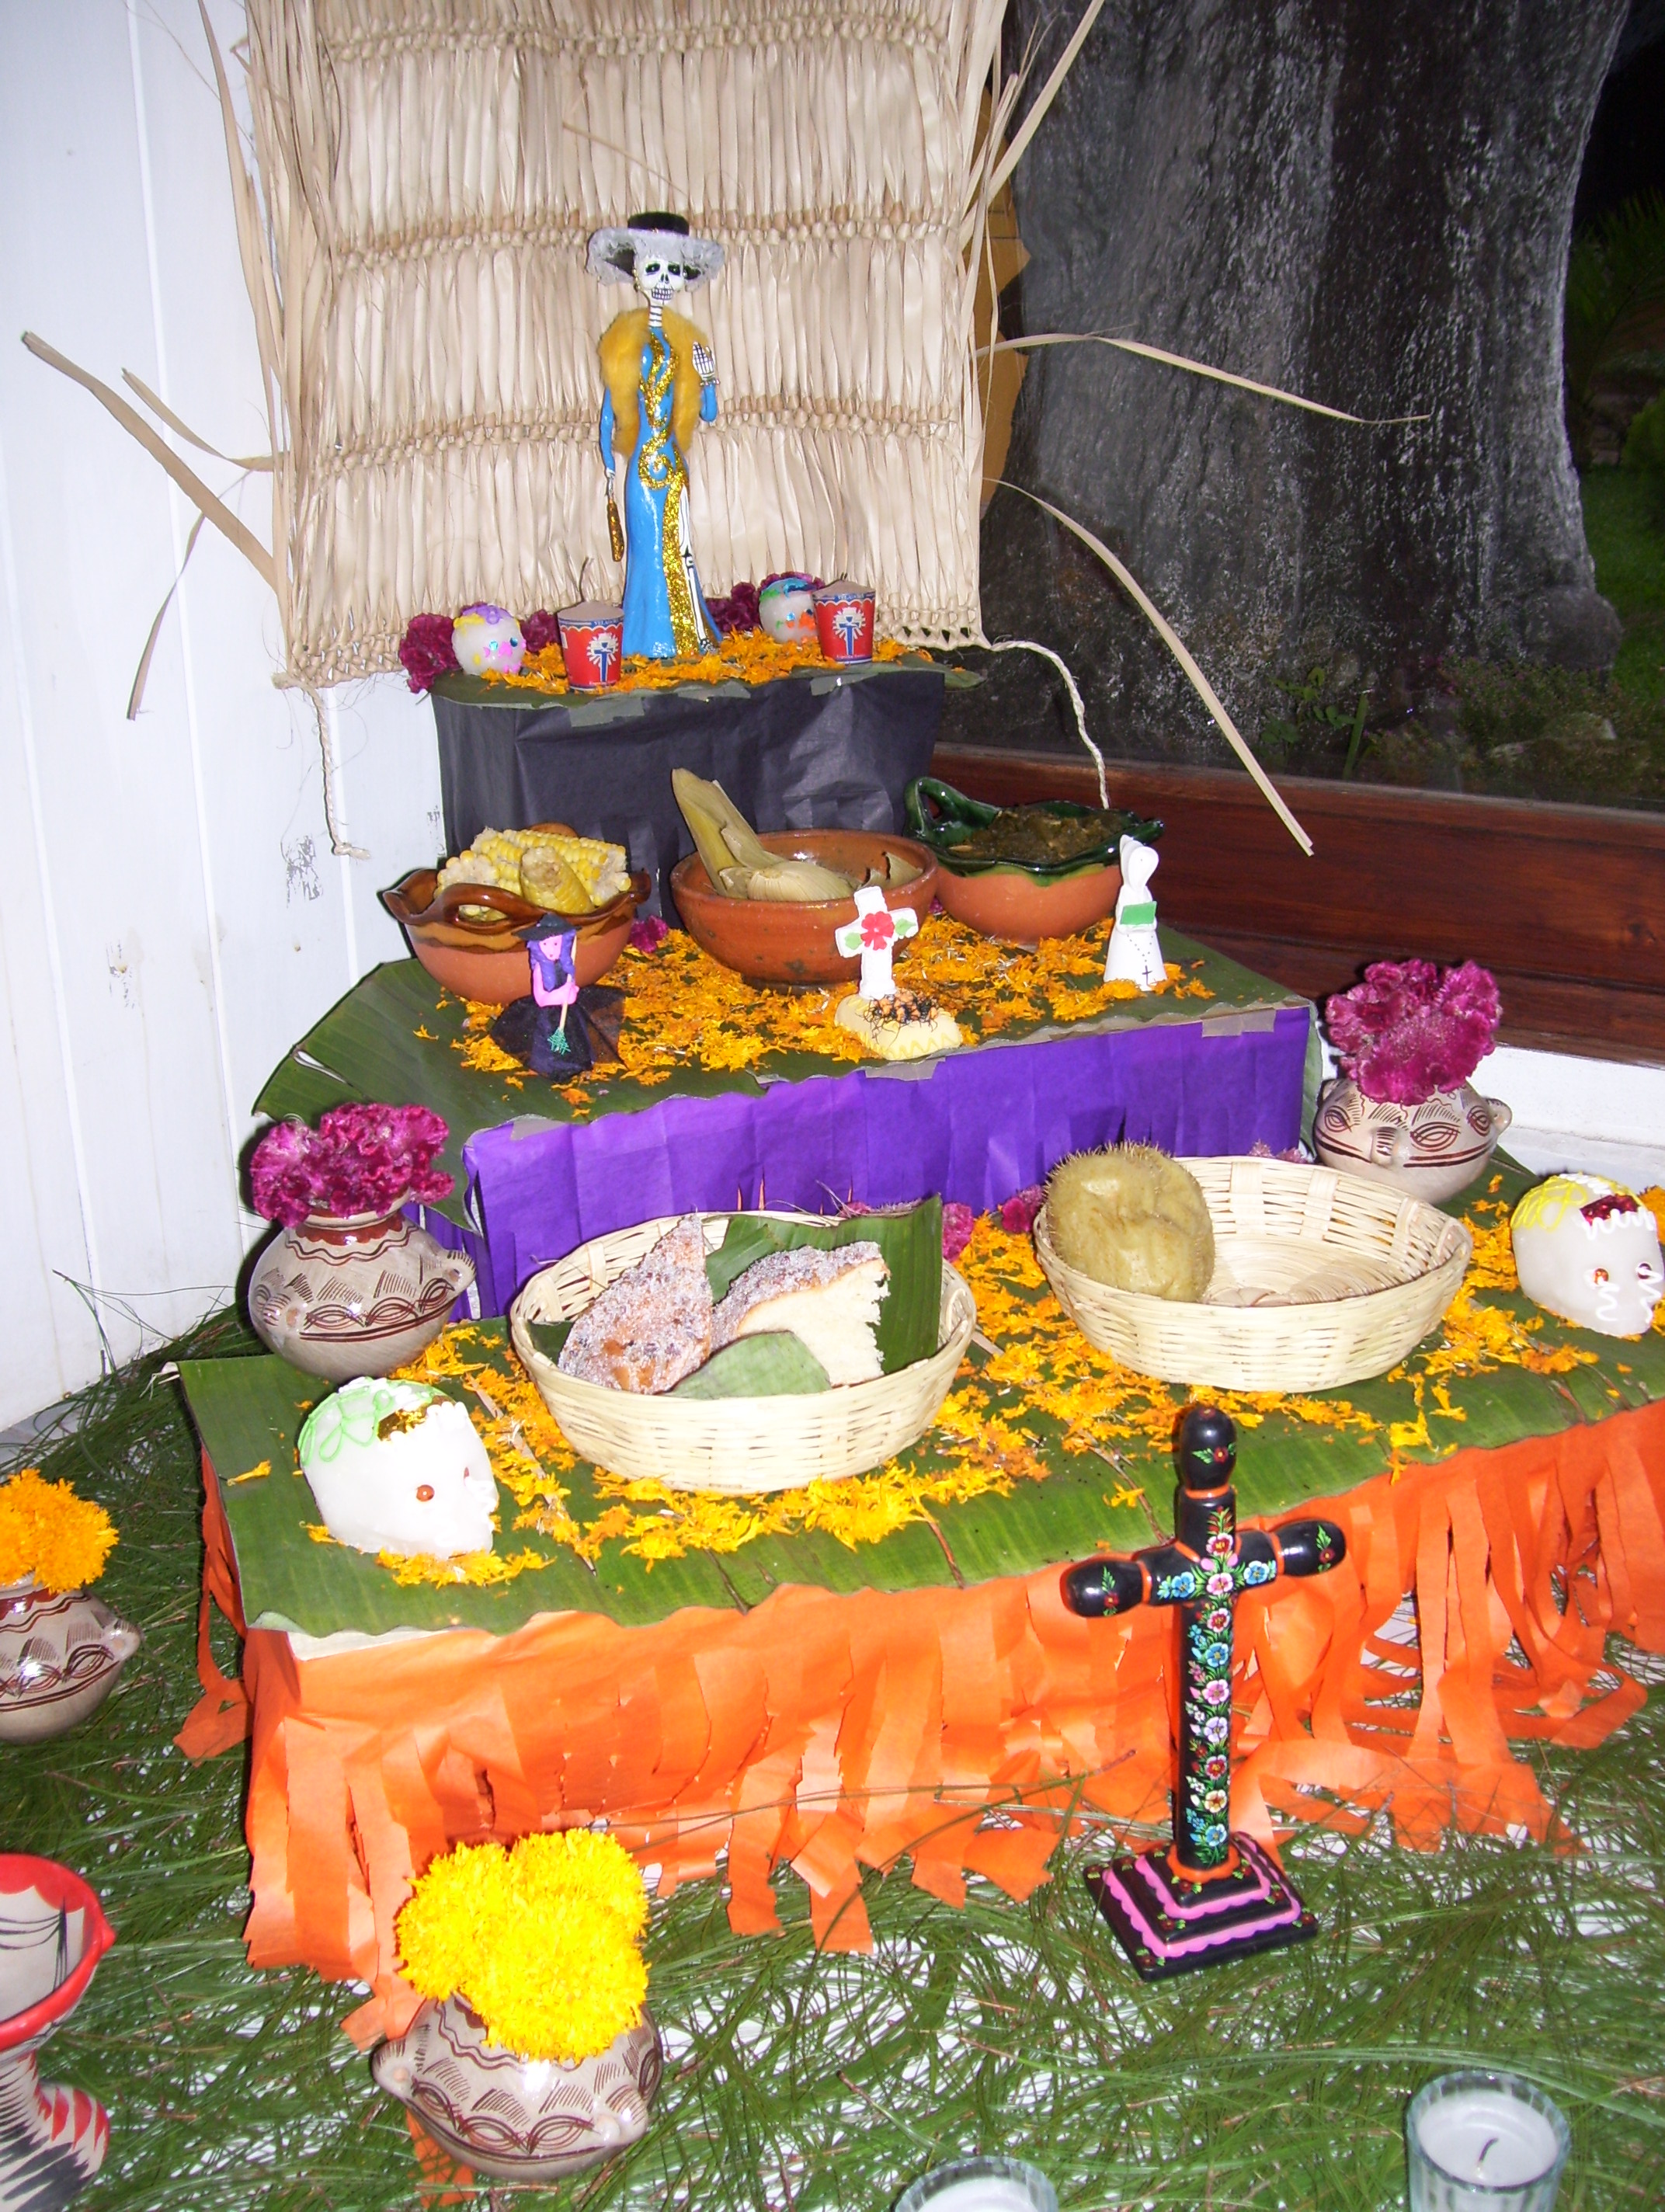 Altar for the dead in Hotel Plaza Santo Domingo